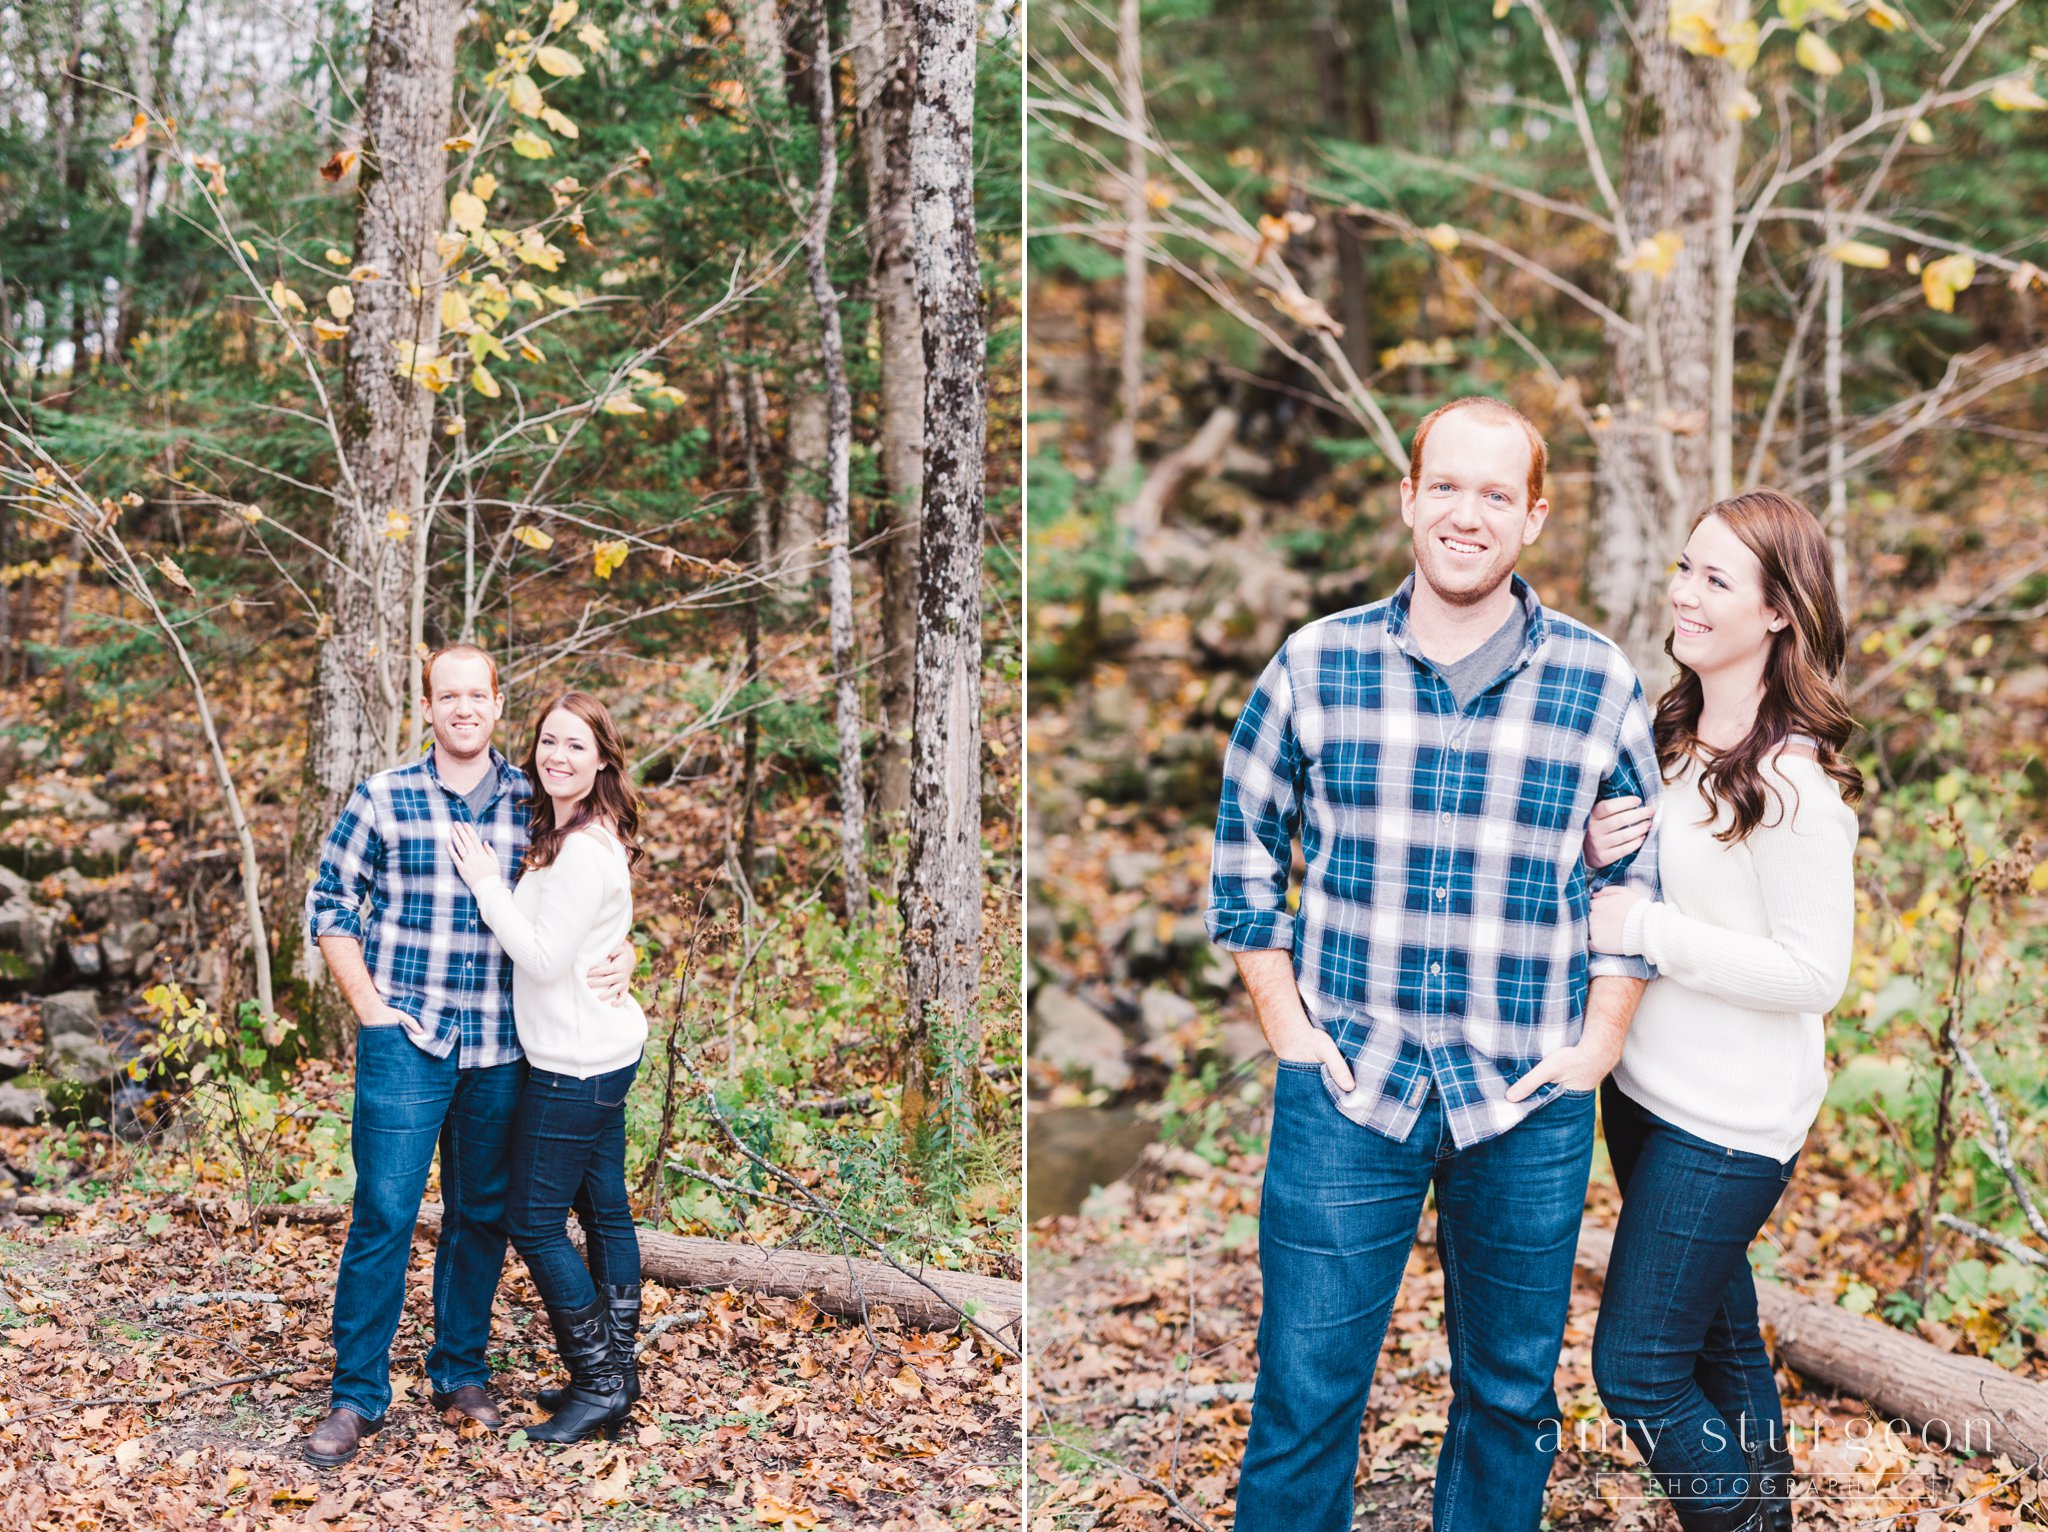 Fall Wakefield Engagement Session with plaid clothing